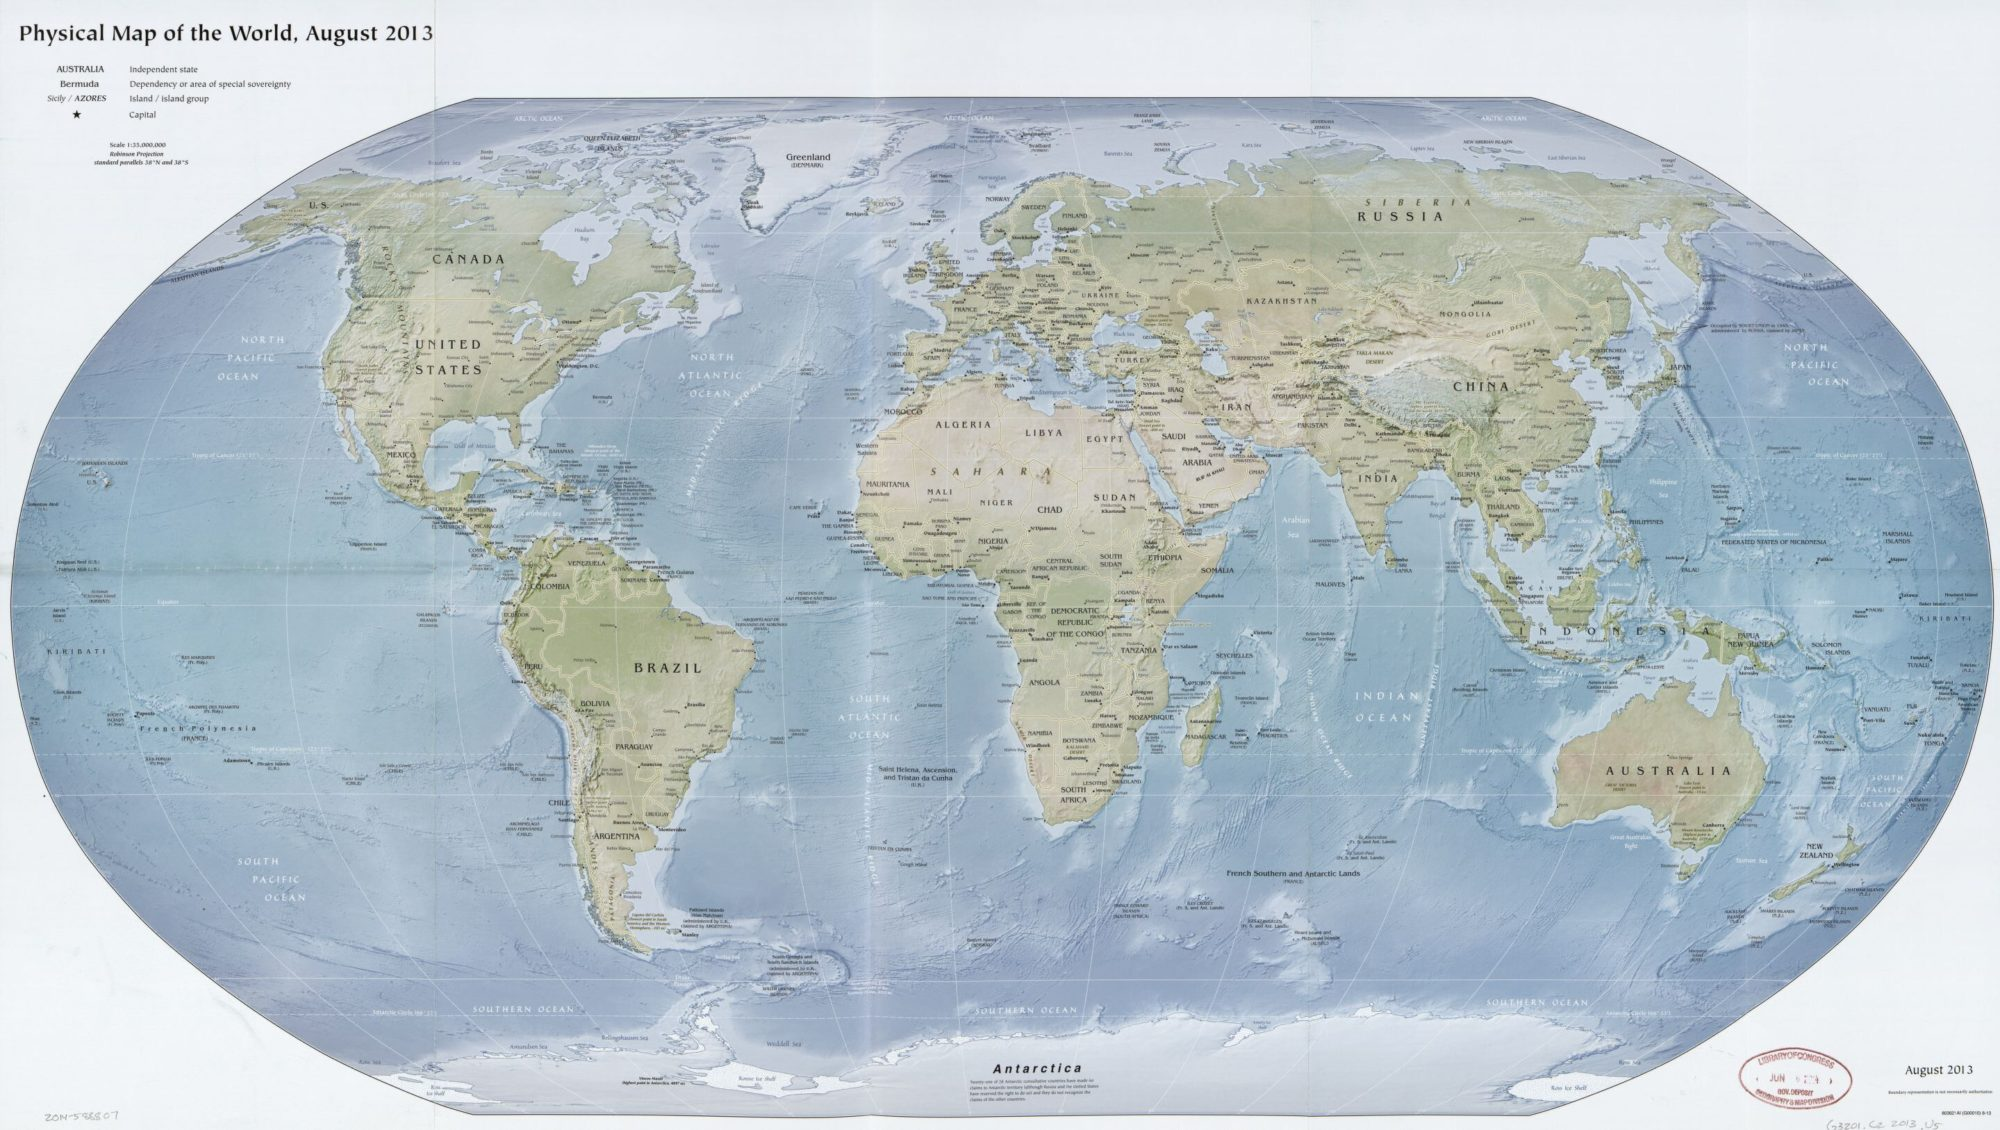 The World Physical Map  | August 2013| Large, Printable Downloadable Map